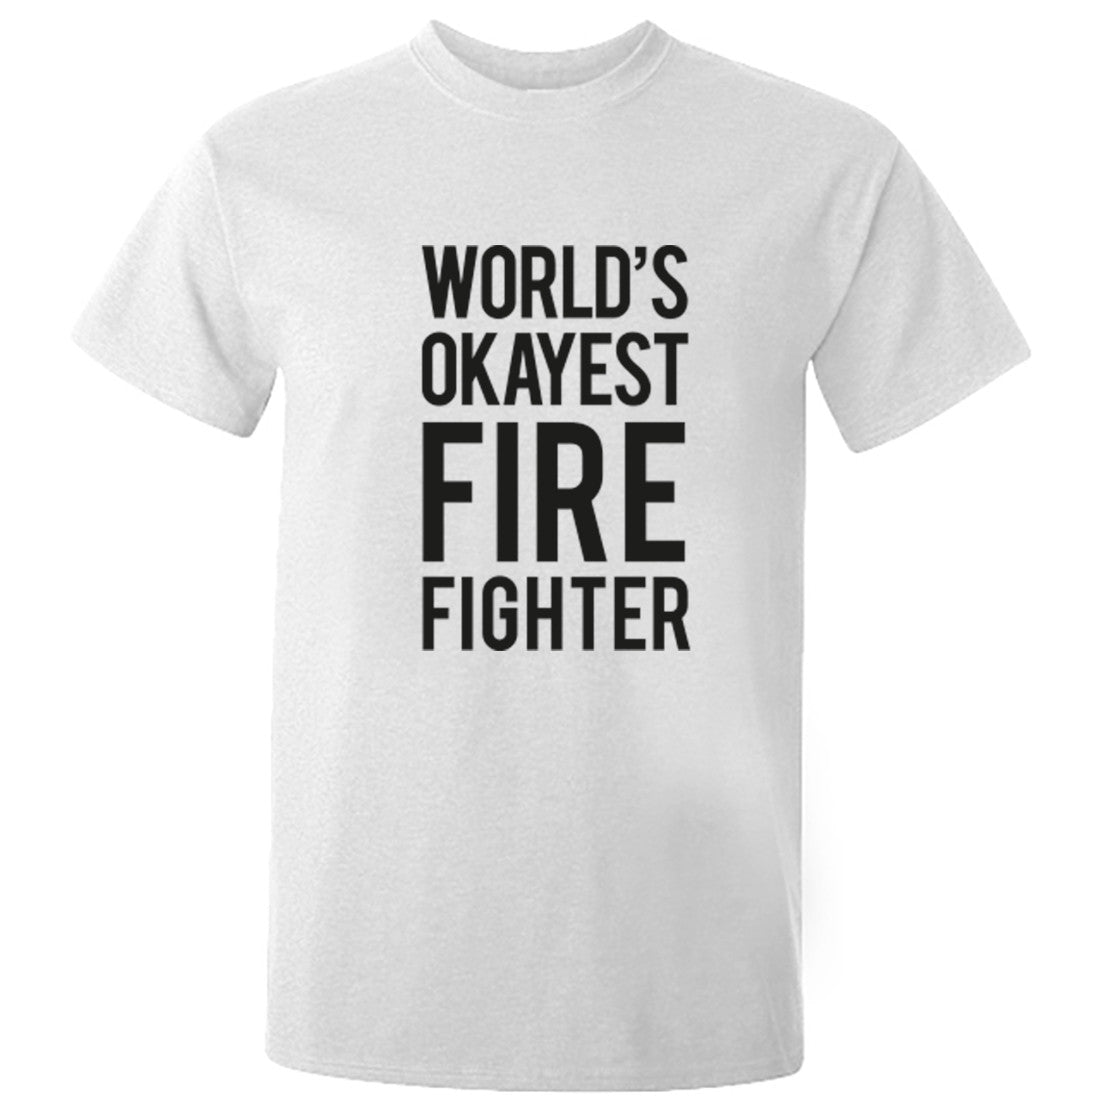 Worlds Okayest Fire Fighter Unisex Fit T-Shirt K0521 - Illustrated Identity Ltd.